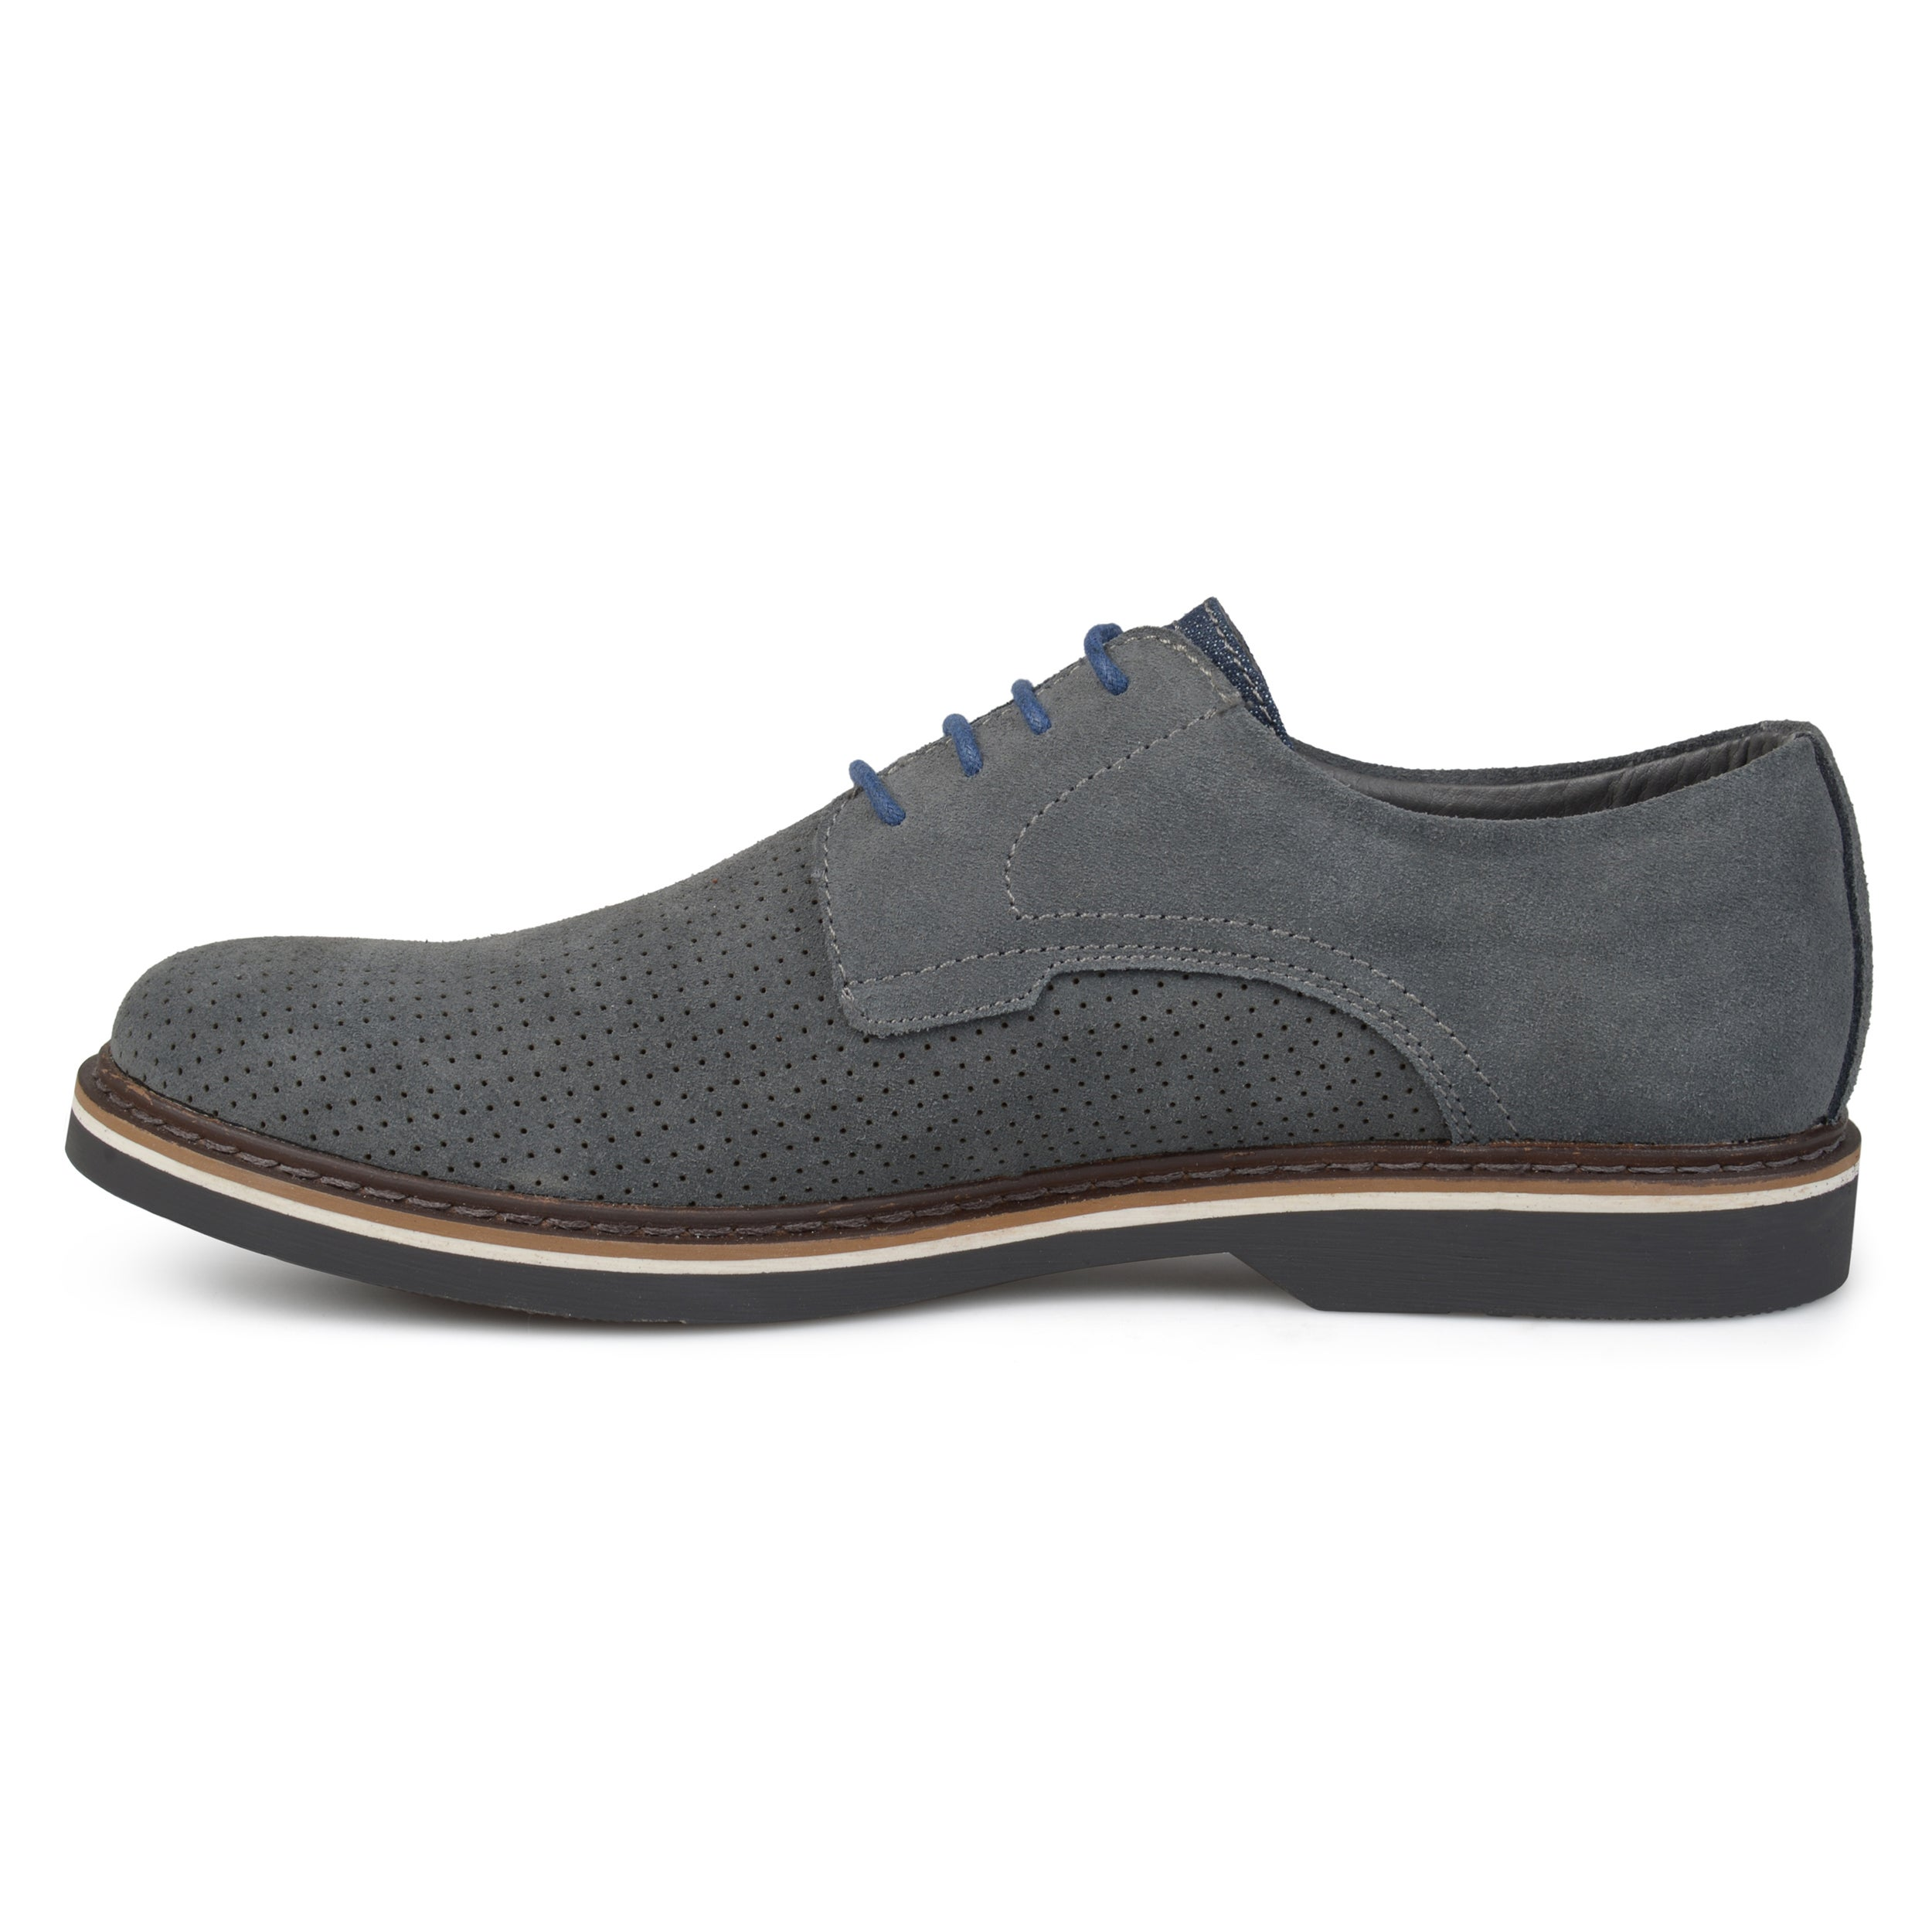 Vance Co Mens Kash Genuine Leather Suede Perforated Laceup Dress Shoes  Free Shipping Today  Overstockcom  23292356